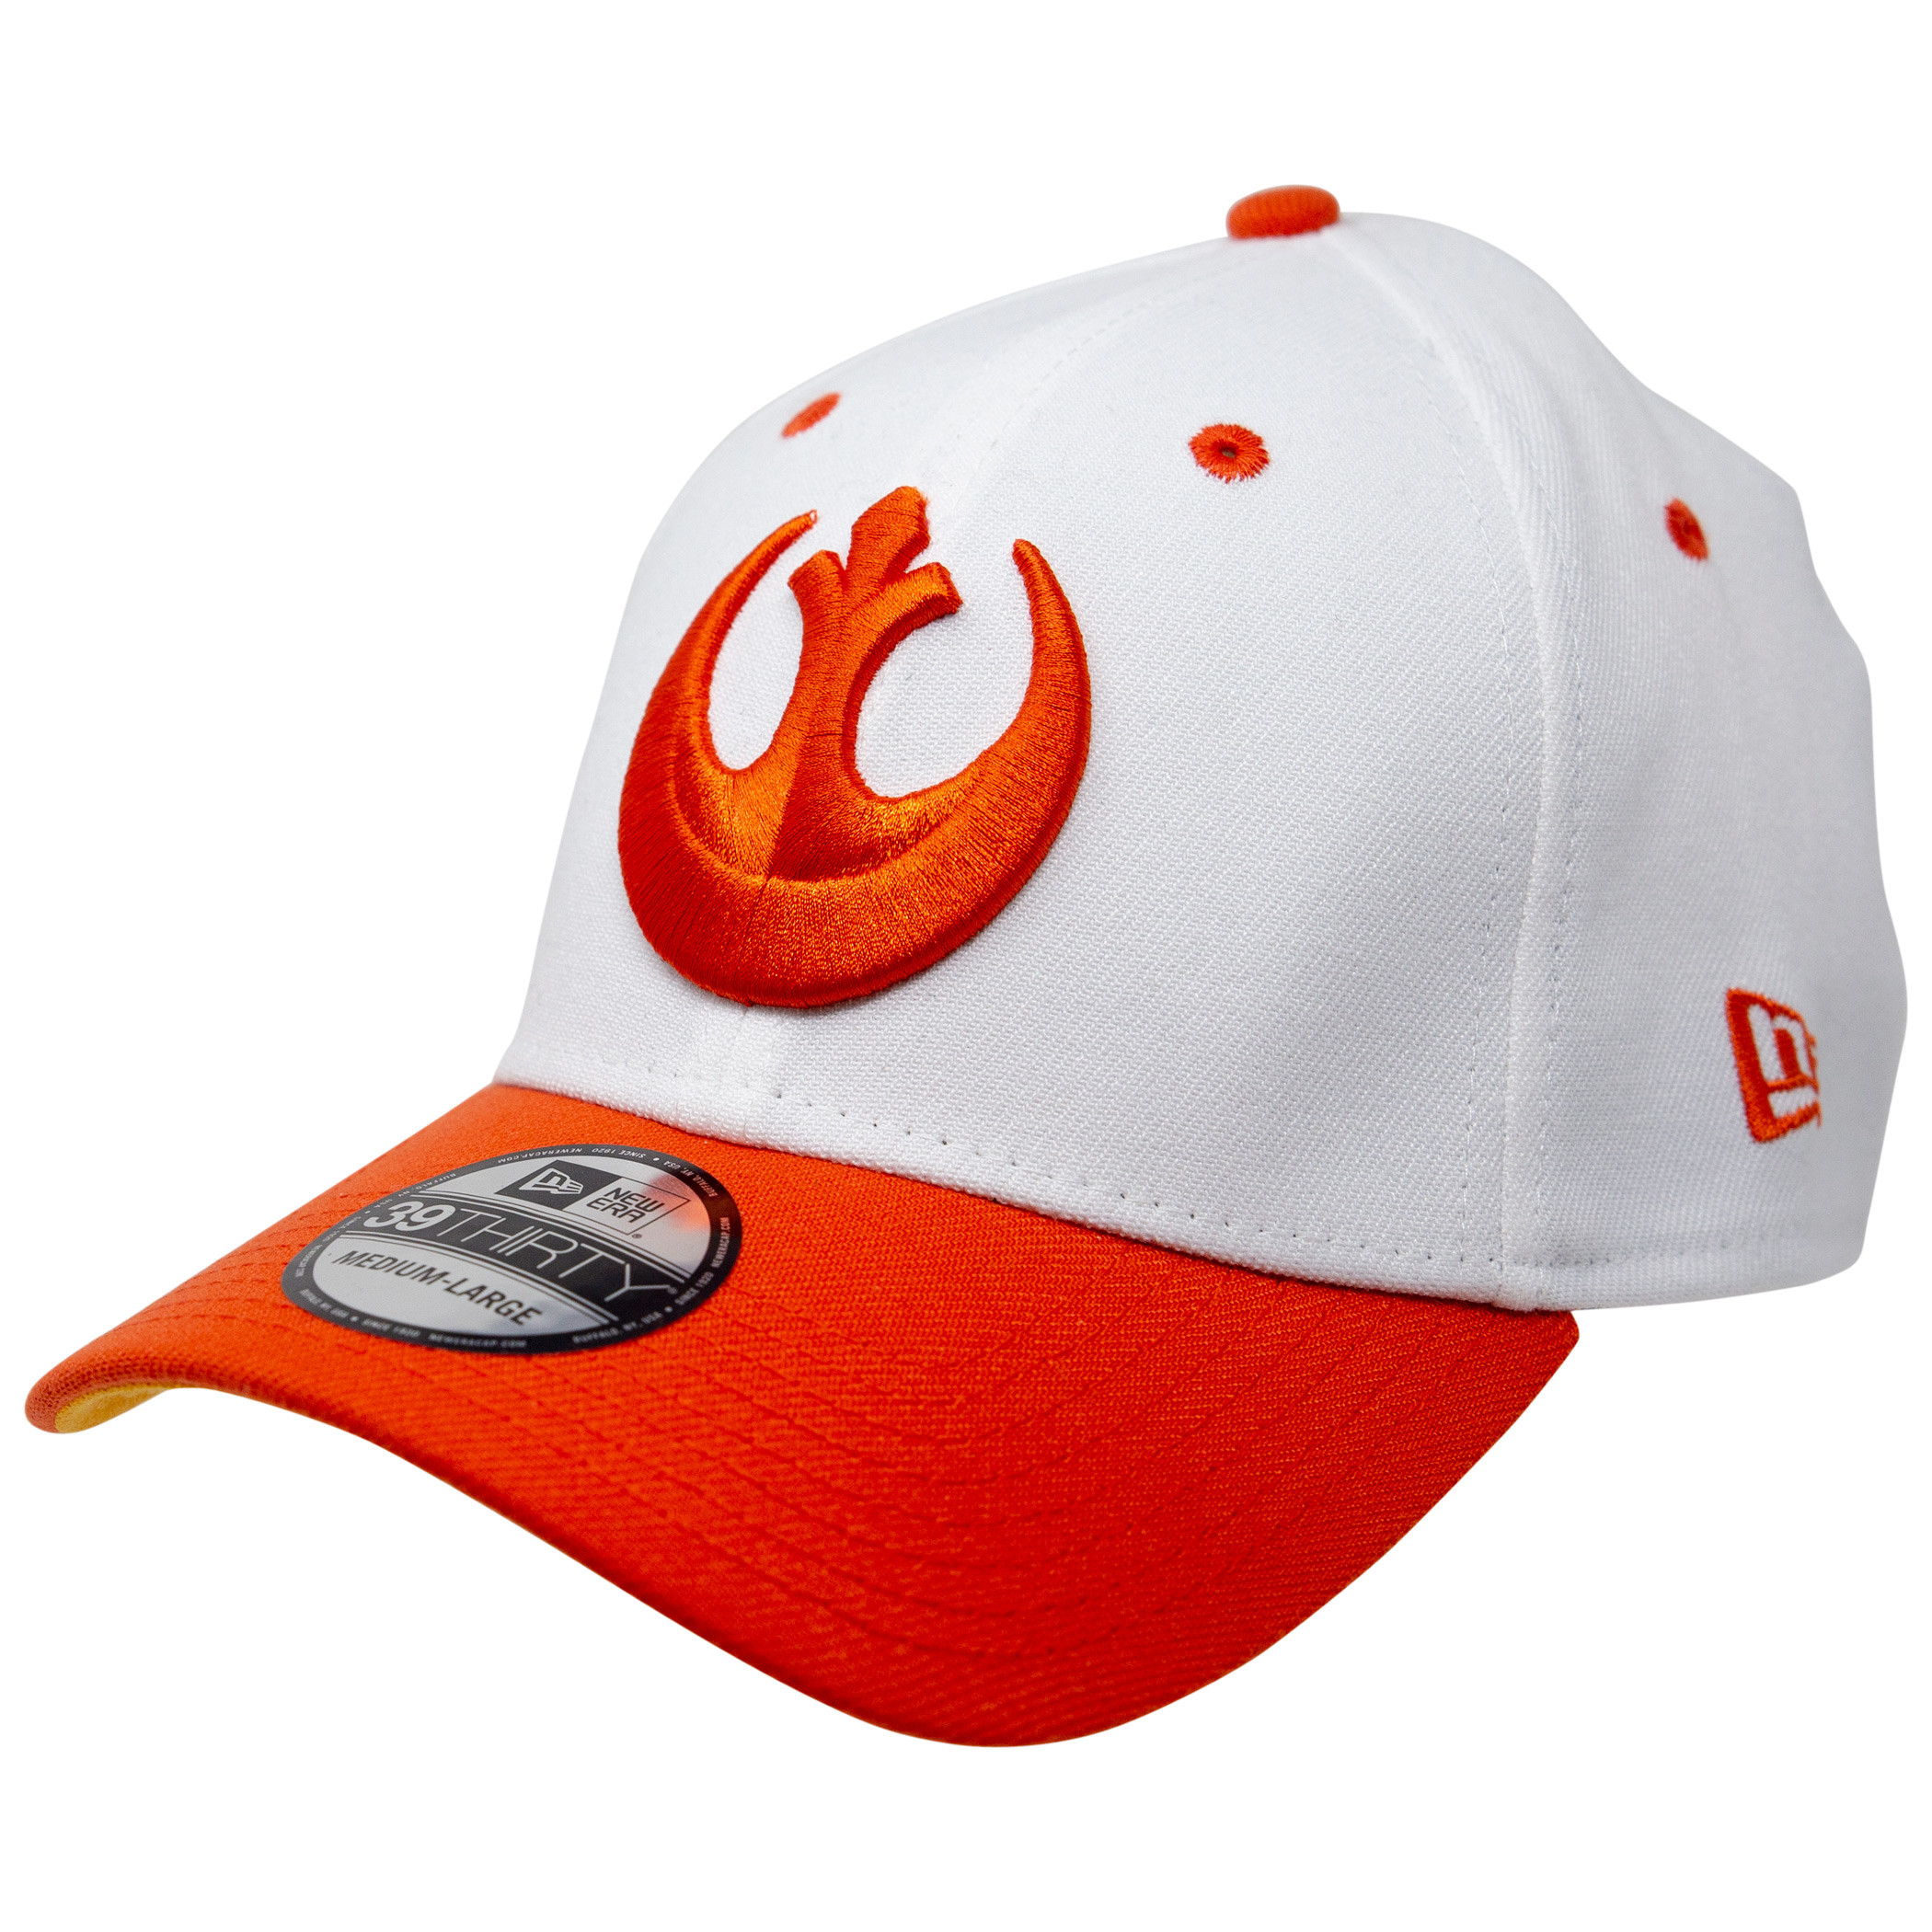 Star Wars Rebel Fighter New Era 39Thirty Fitted Hat